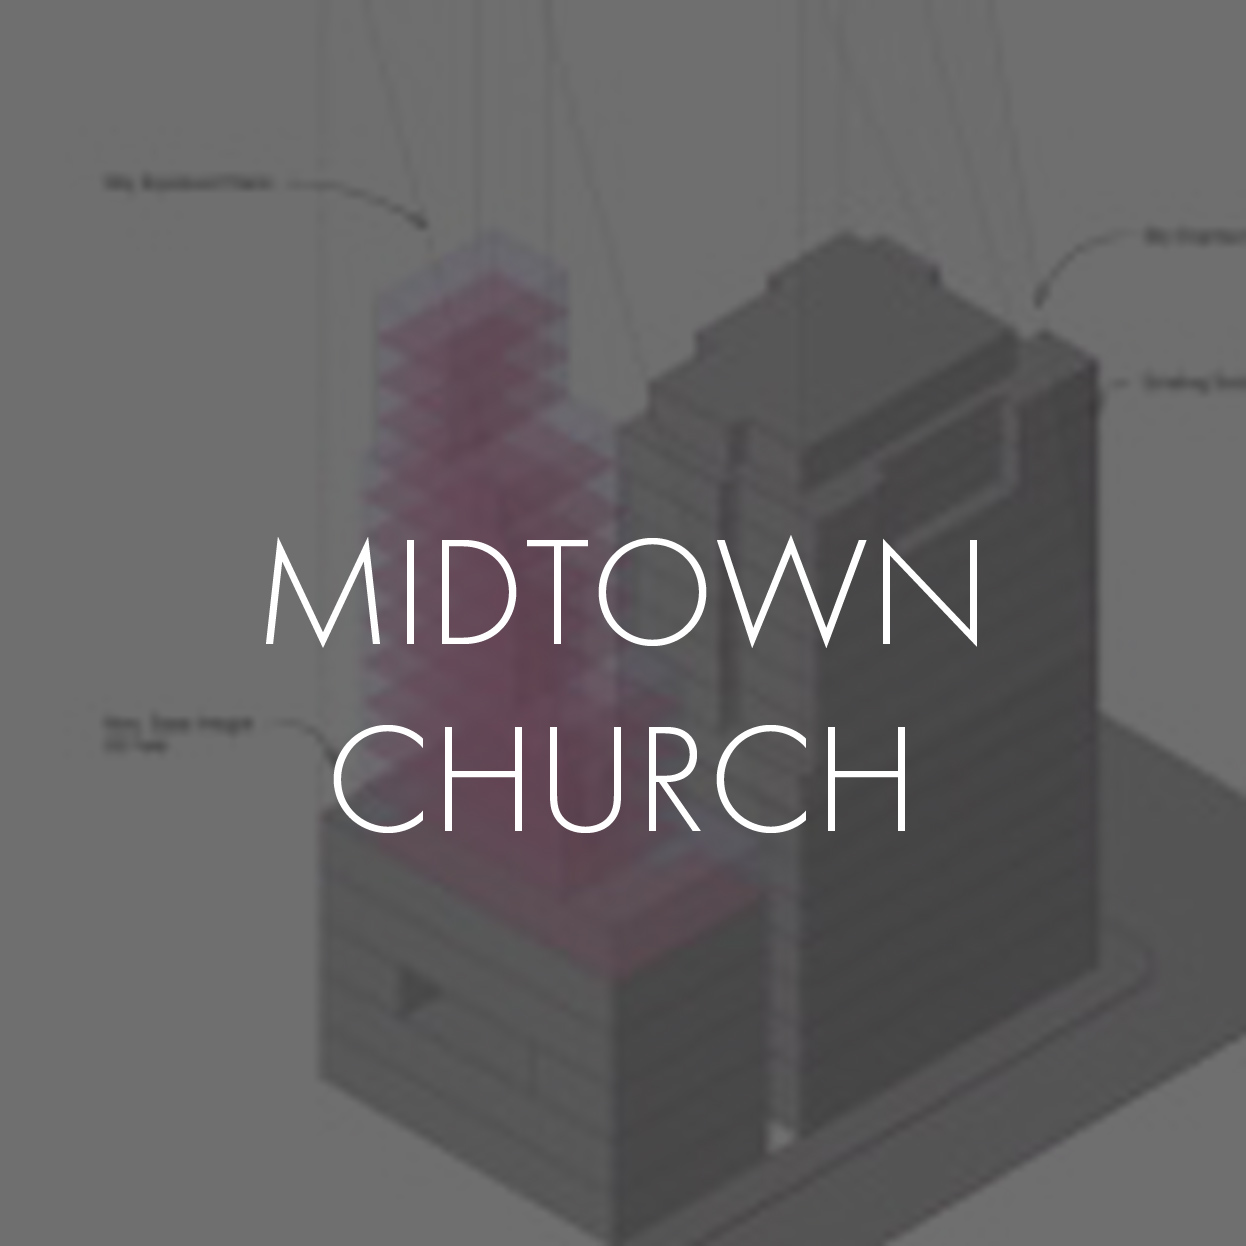 02_THUMBNAIL midtown church.jpg